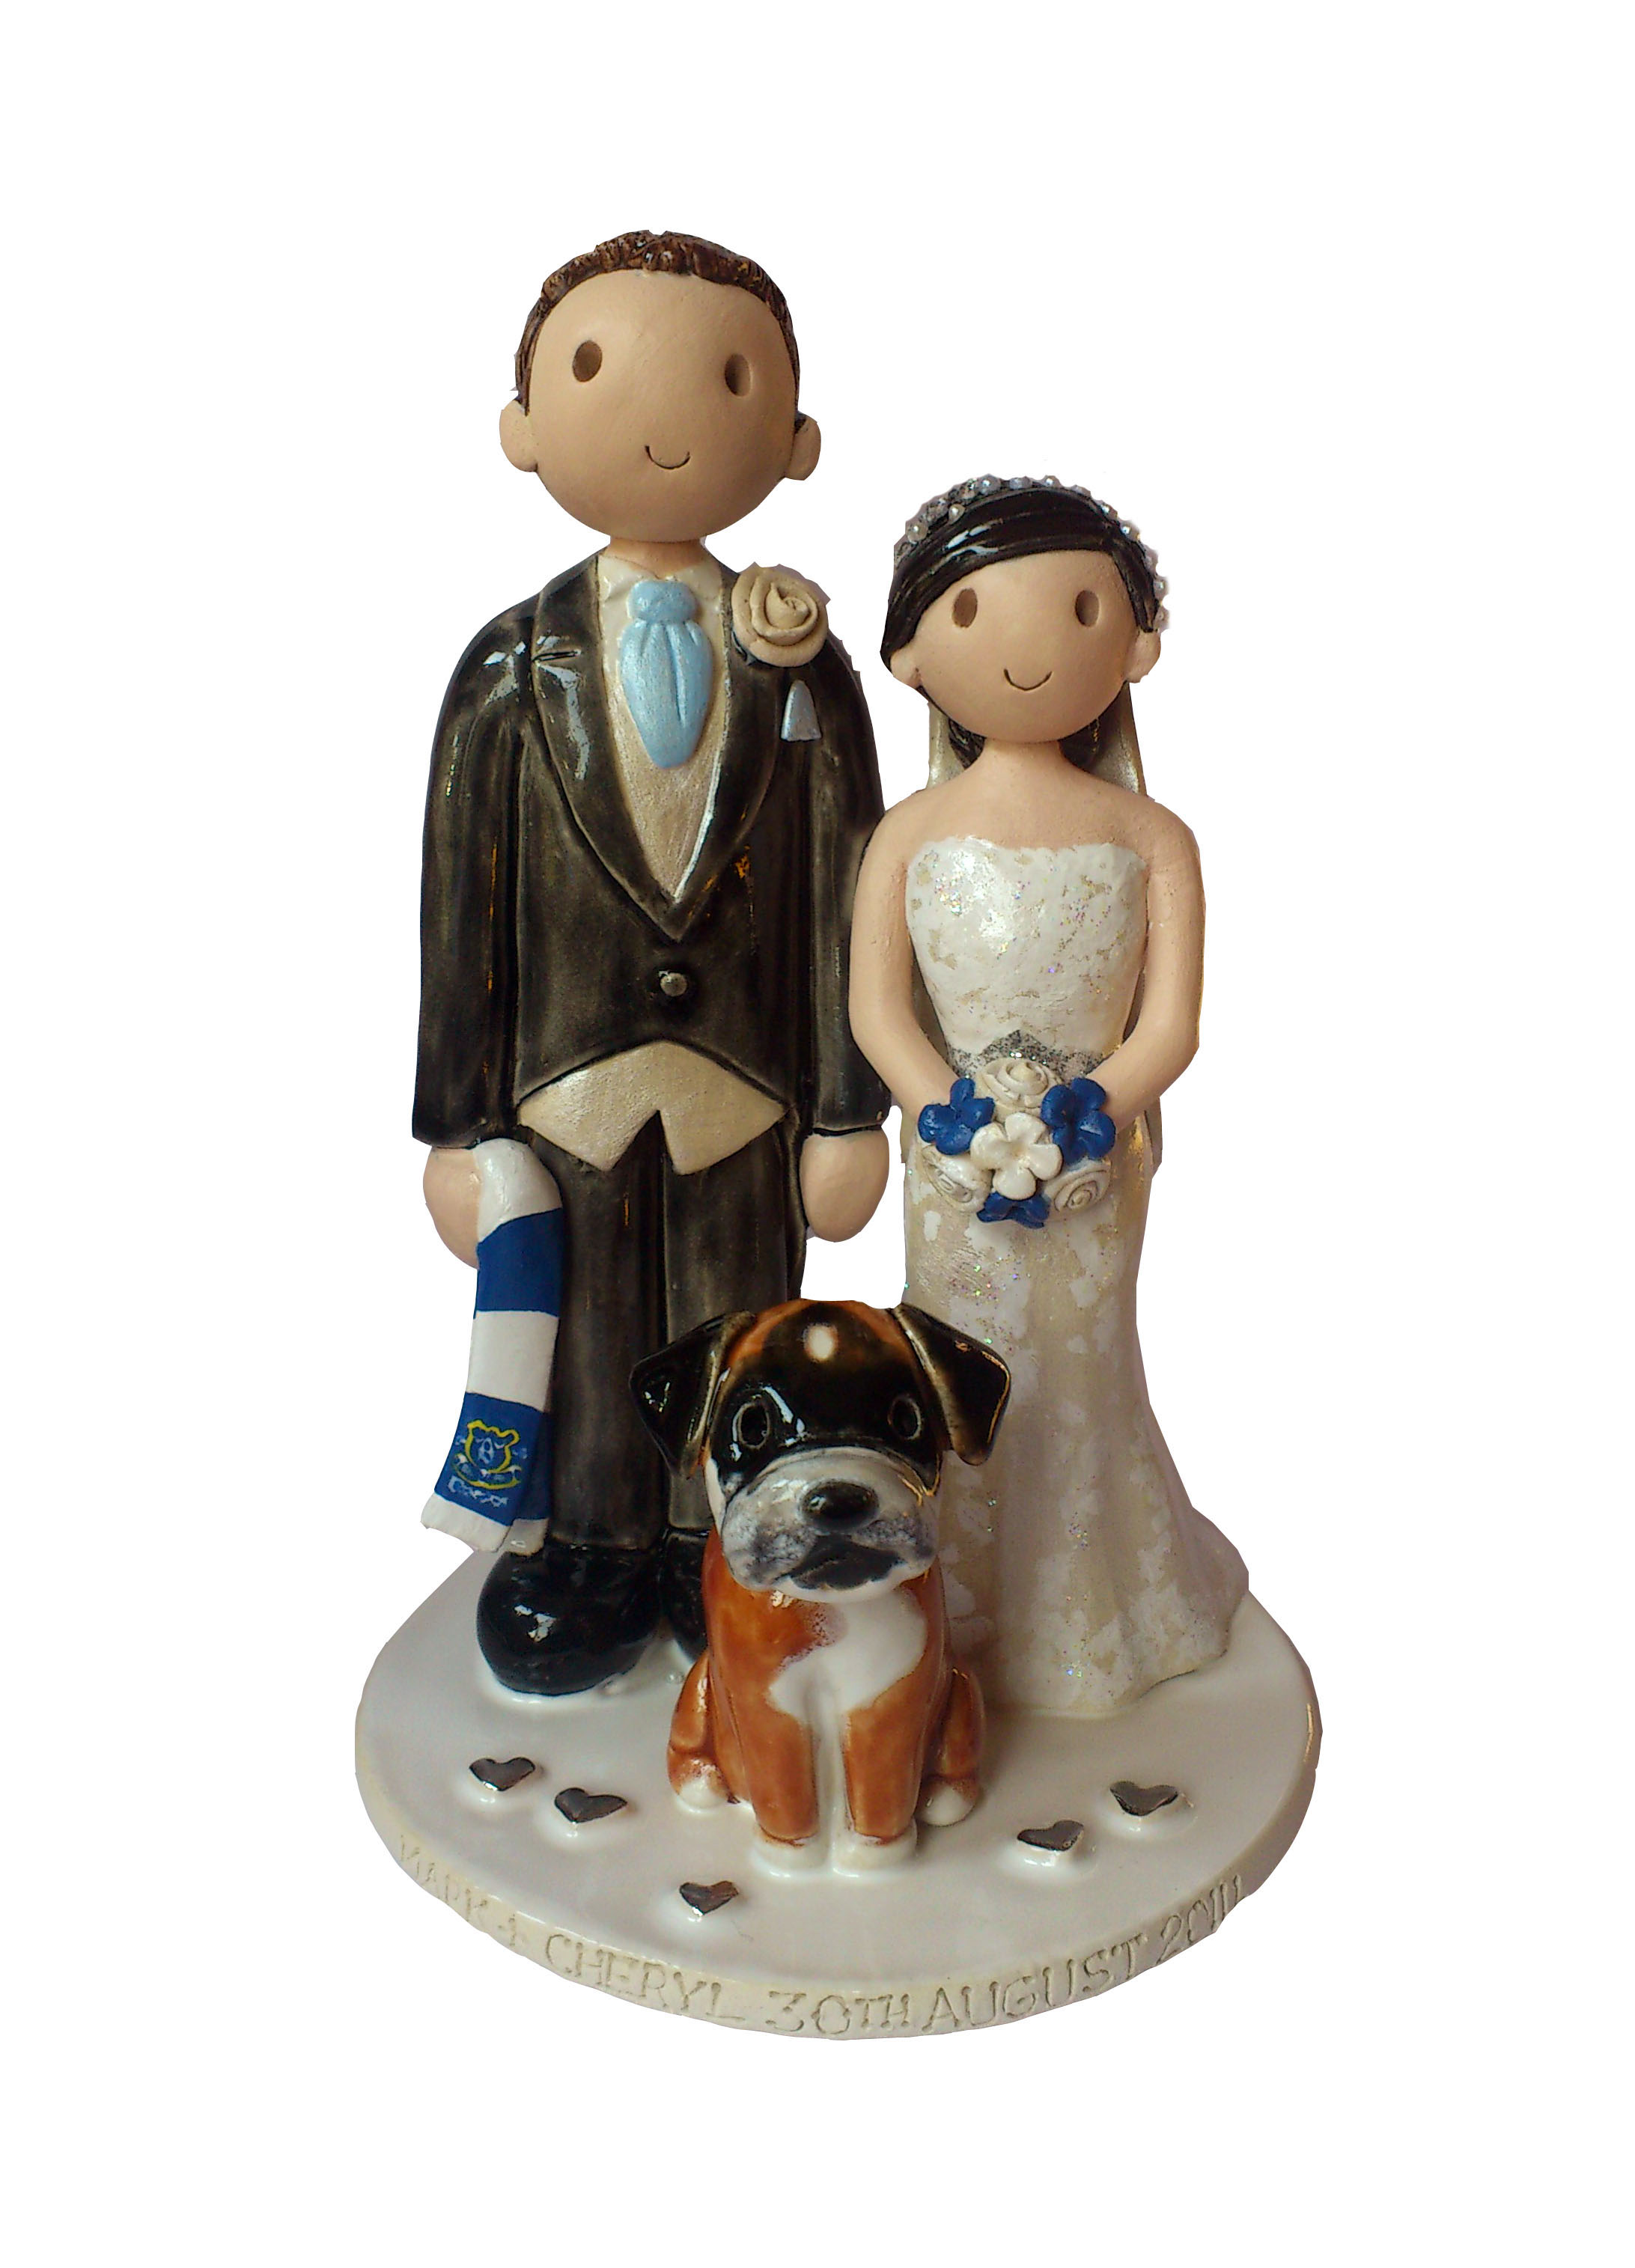 best wedding cake toppers uk wedding cake toppers gallery examples of toppers we 11704